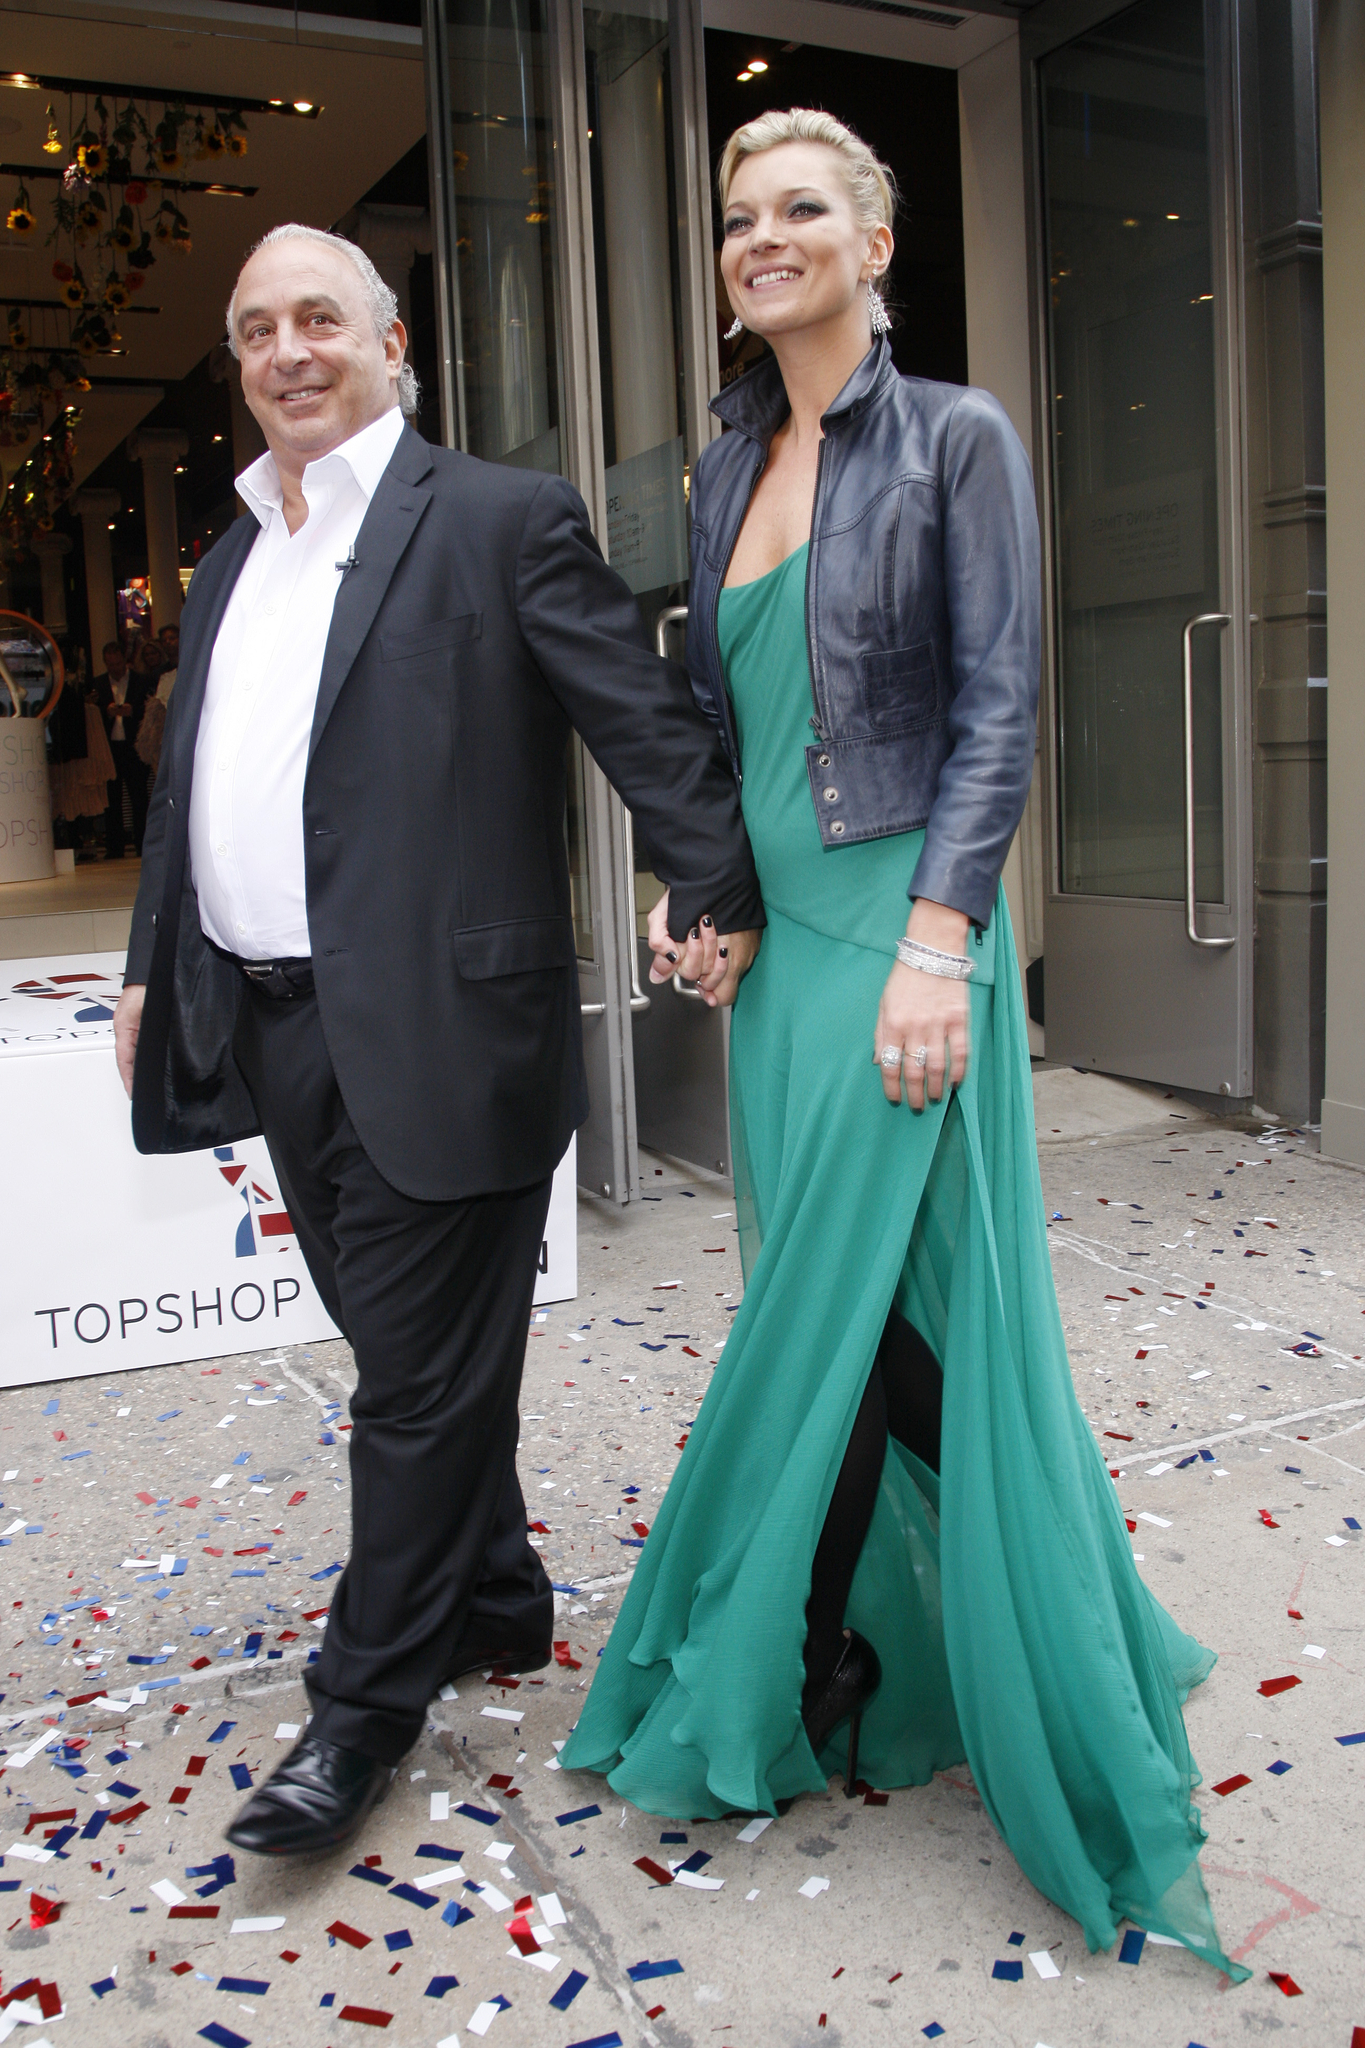 Sir Philip Green and Kate Moss attend the Topshop Flagship Opening in New York.